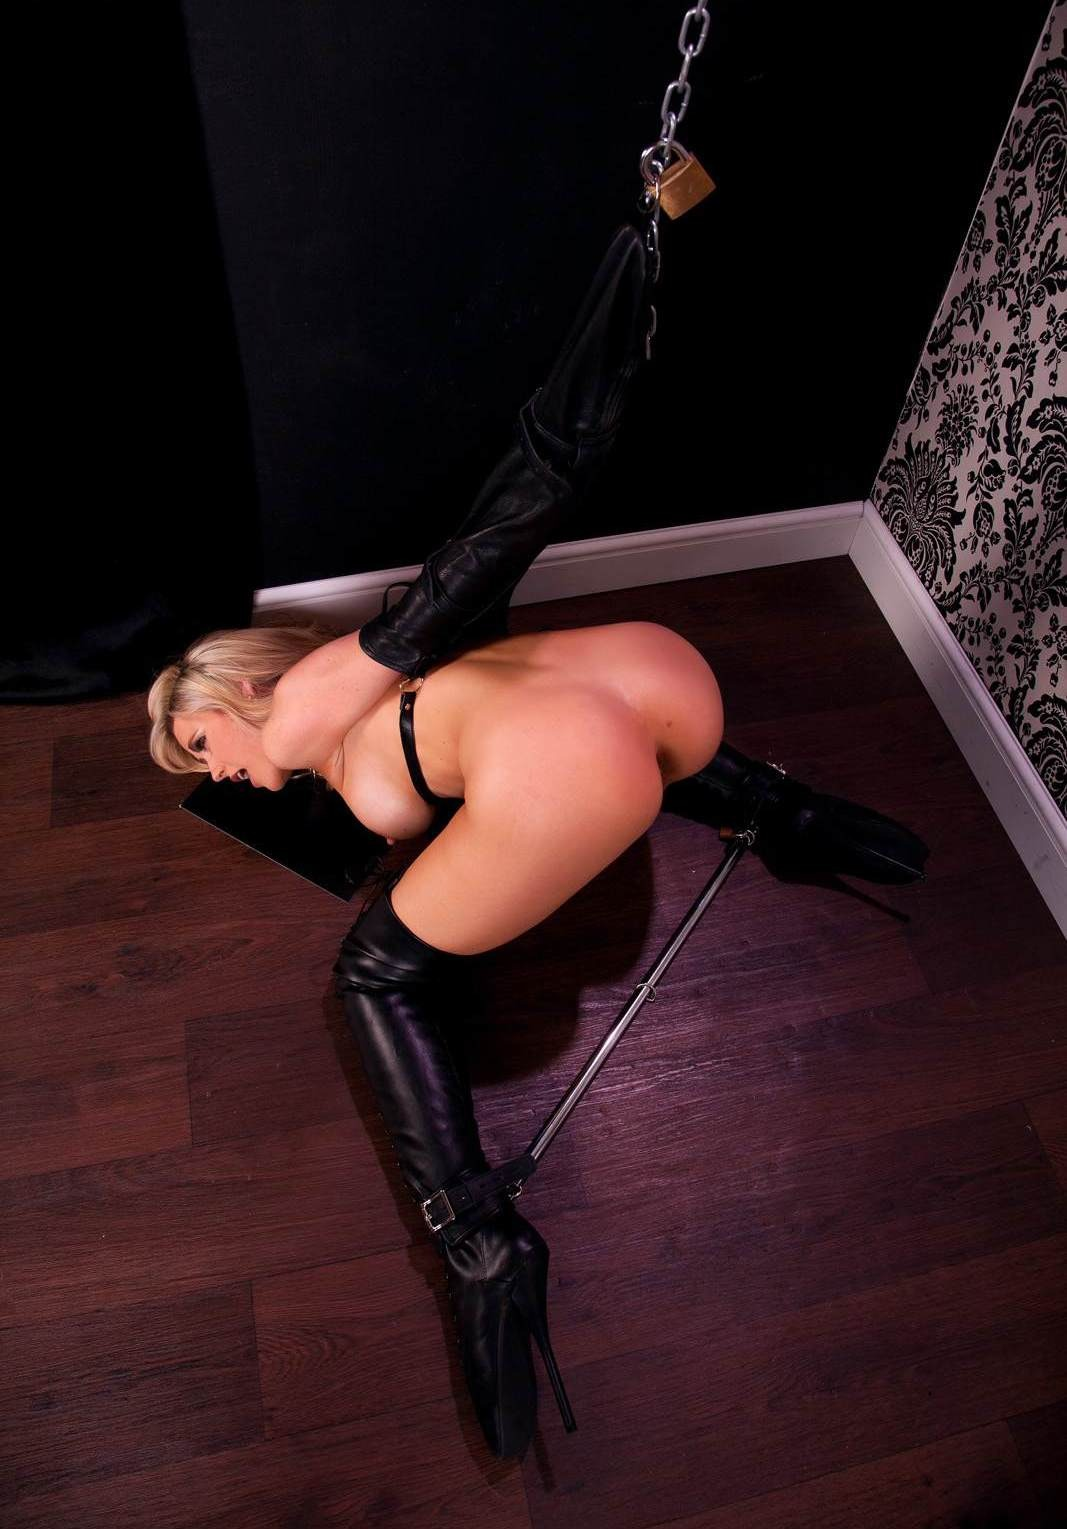 cuckold husband share his wife black cook free tubes look